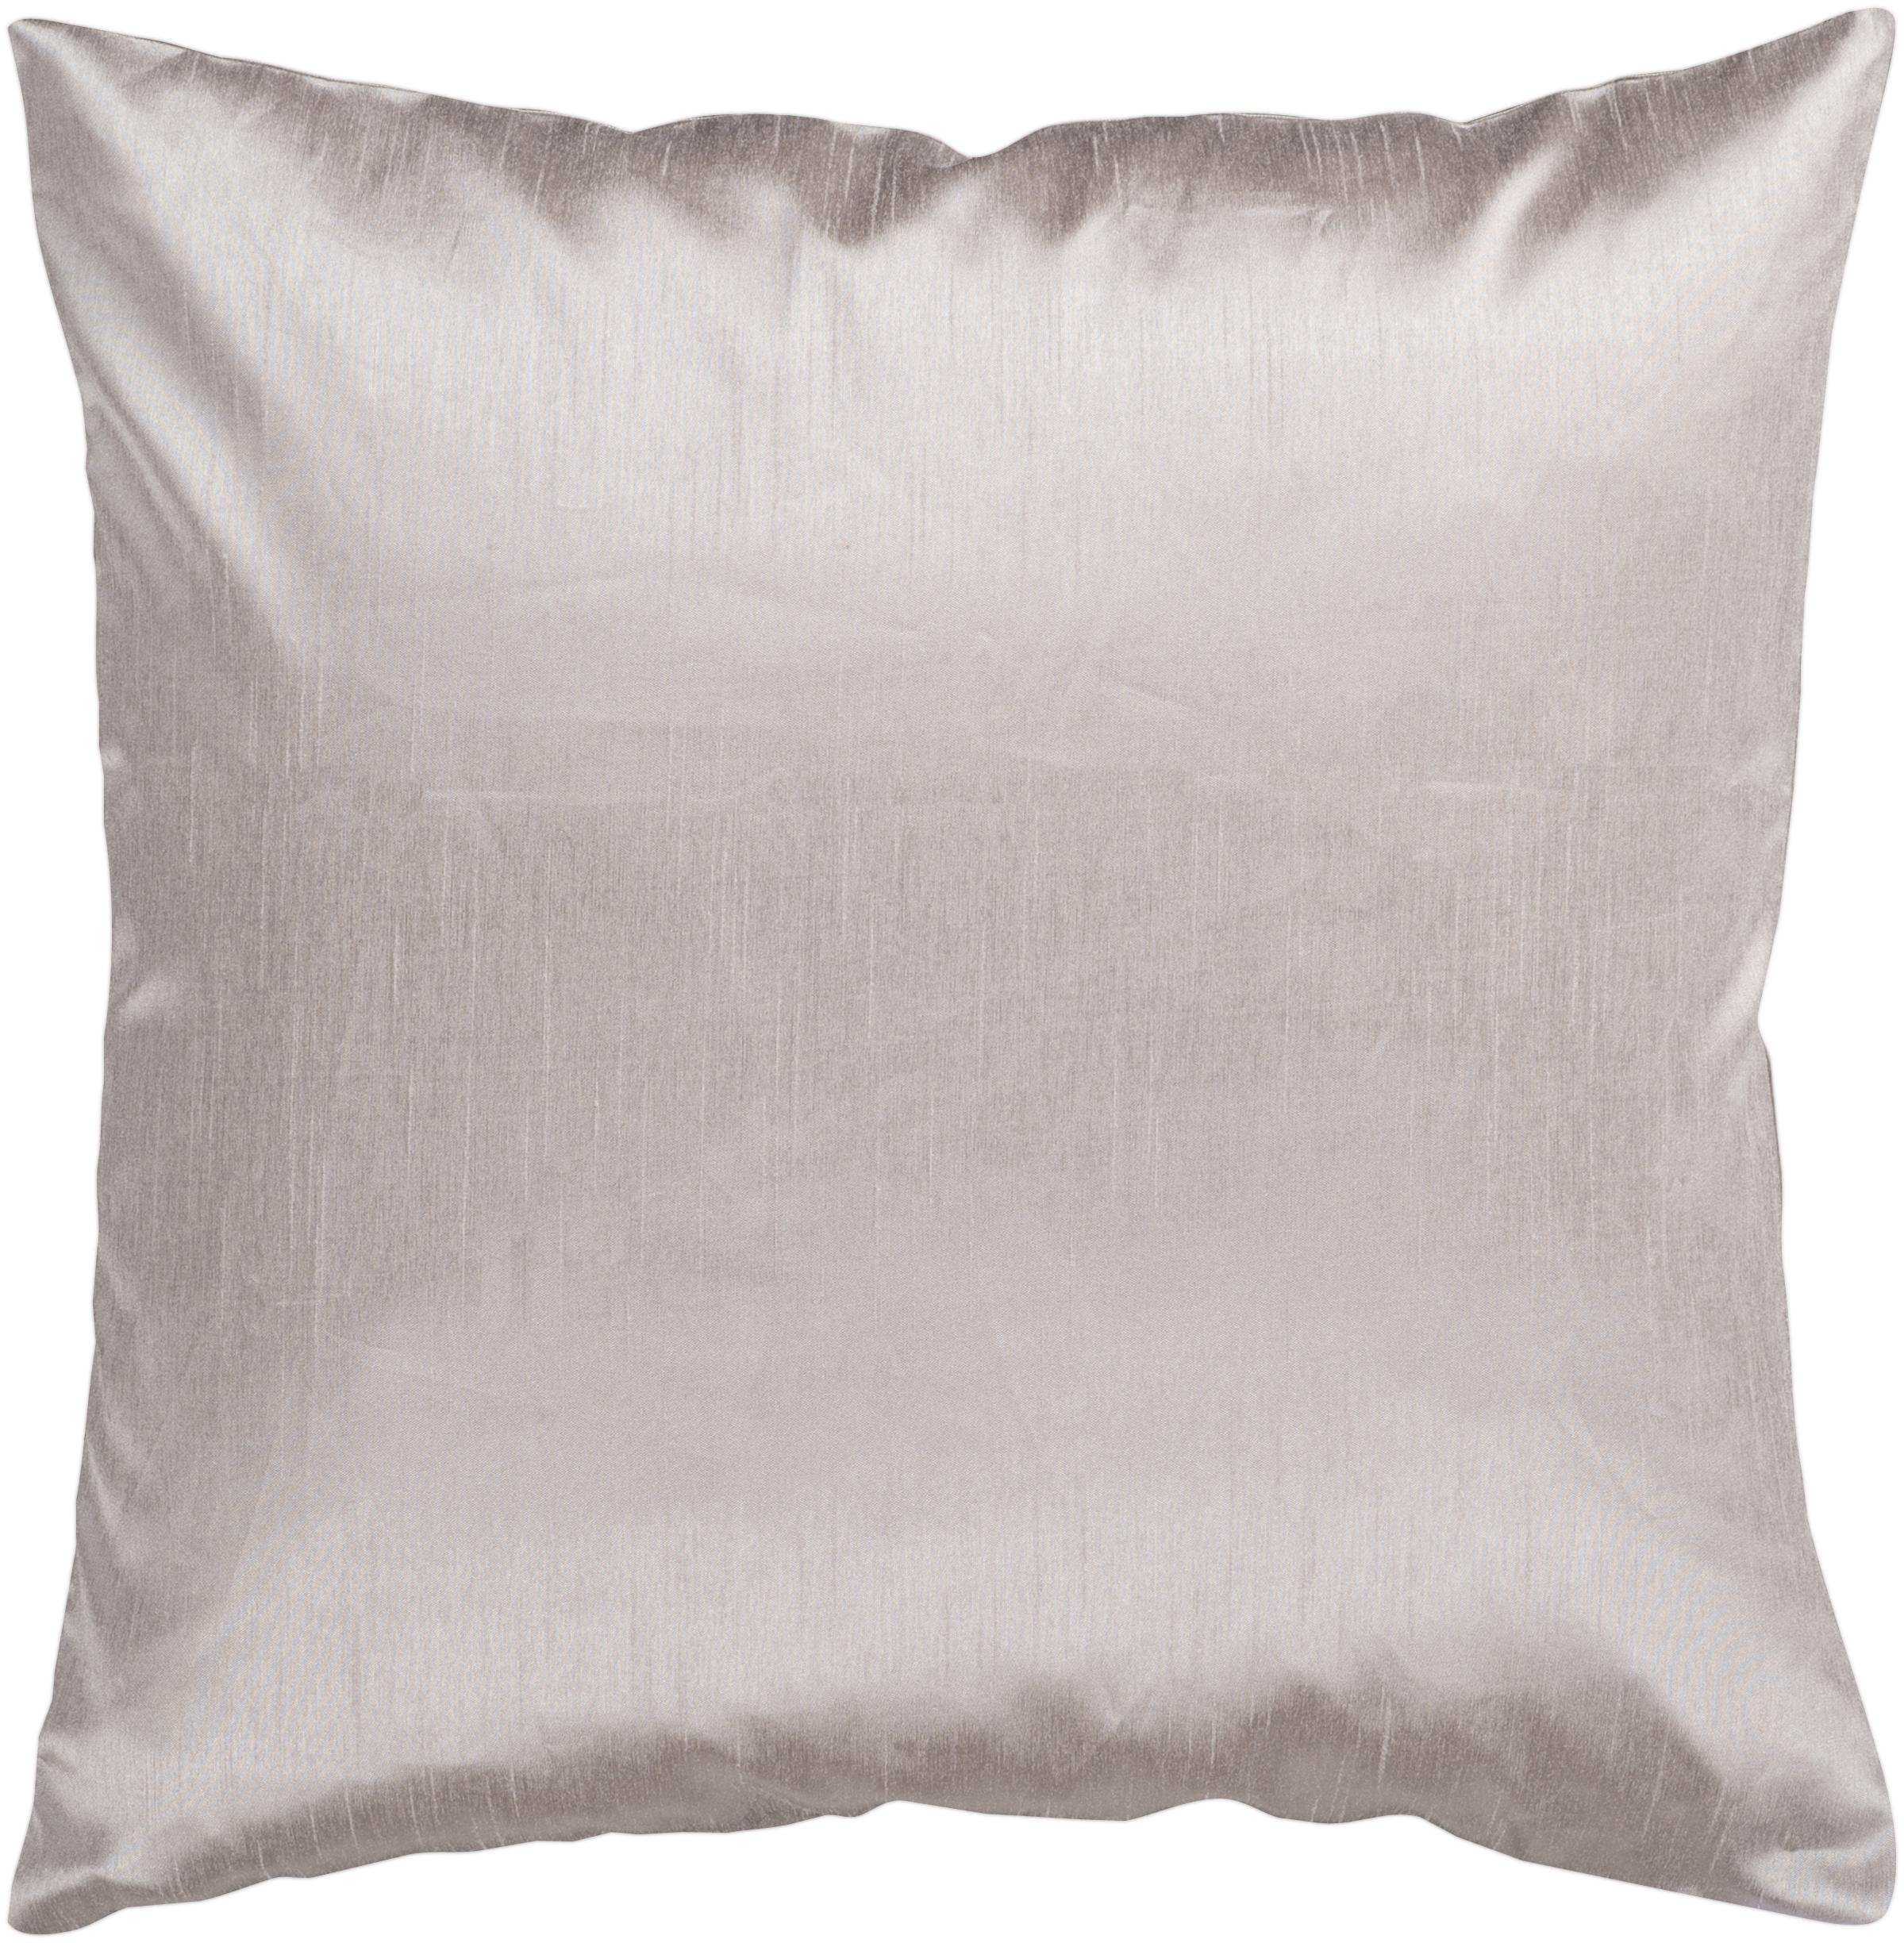 """Pillows 18"""" x 18"""" Pillow by Surya at Esprit Decor Home Furnishings"""